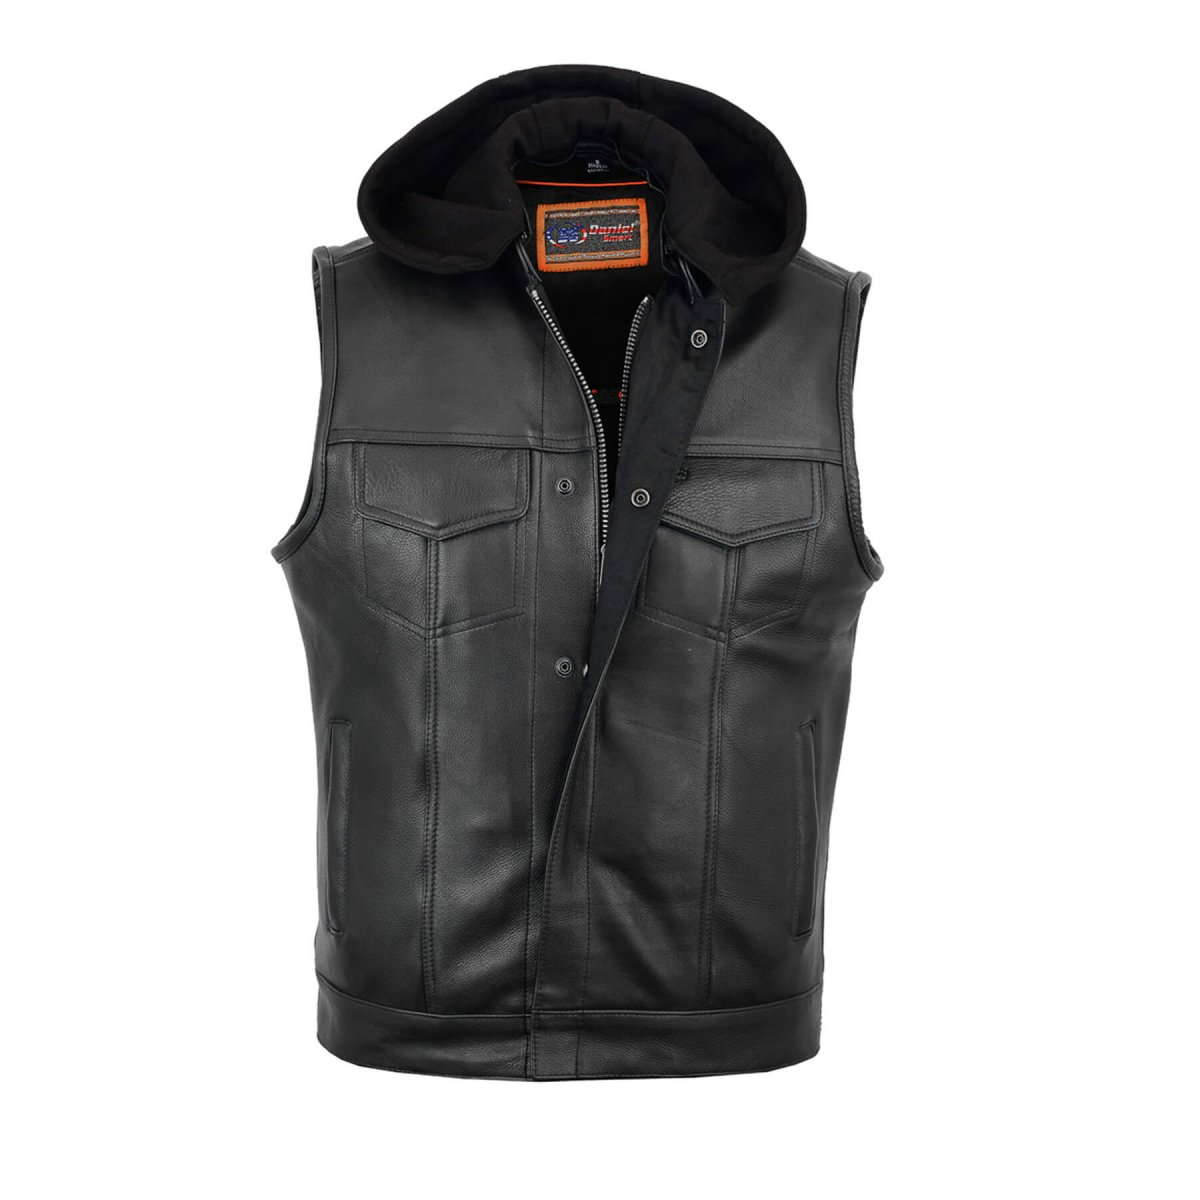 Soft Leather Men's Motorcycle Riding Side lace Snap// Zip Front Club Style Vest